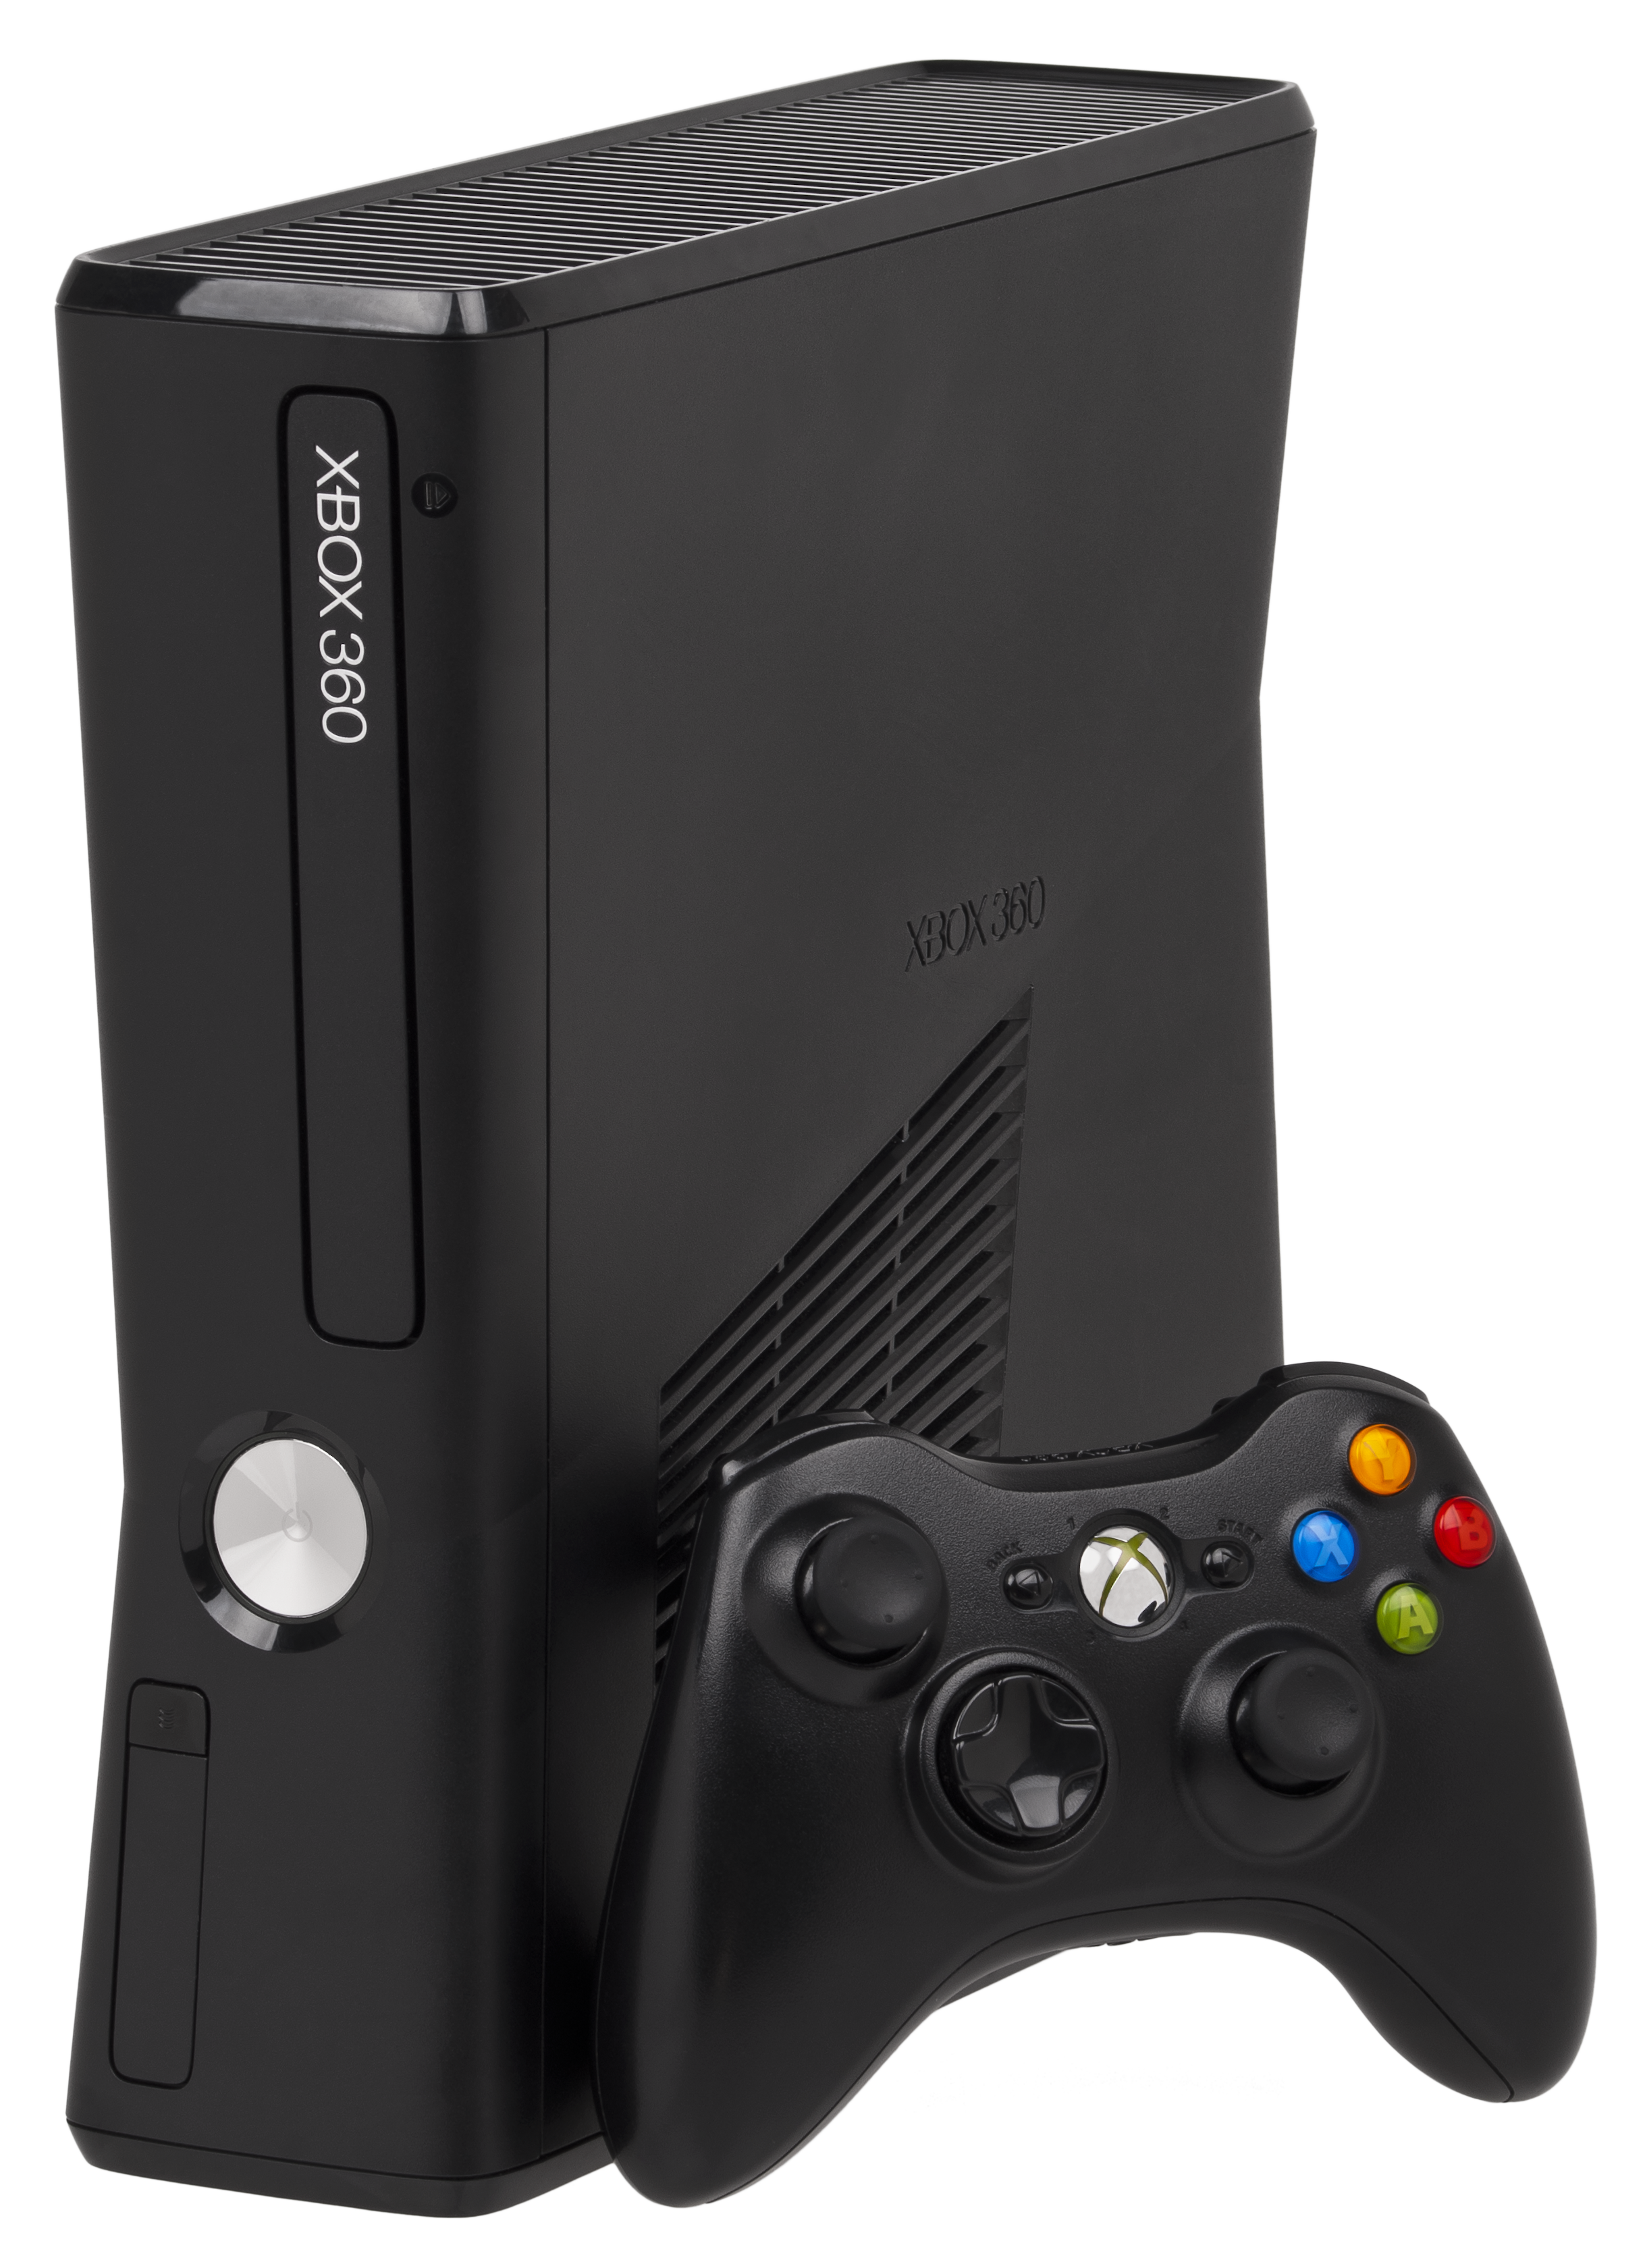 File xbox 360s console wikimedia commons for Console de jeux